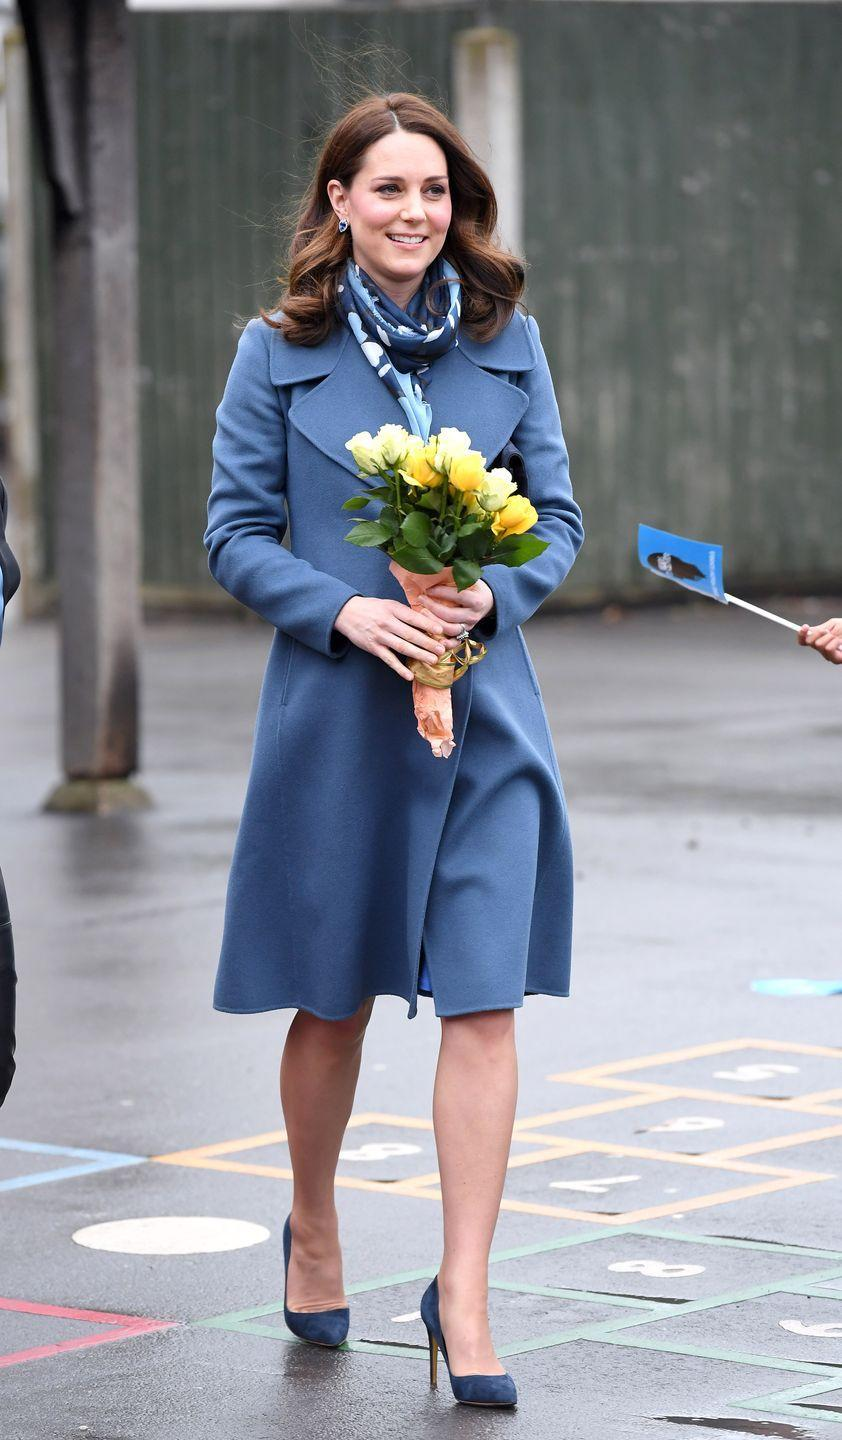 """<p>In a blue Sportmax coat (which she wore at an event <a href=""""http://www.telegraph.co.uk/news/uknews/kate-middleton/11420492/Duchess-of-Cambridge-a-dab-hand-at-pottery-skills-on-visit-to-Emma-Bridgewater-factory.html"""" rel=""""nofollow noopener"""" target=""""_blank"""" data-ylk=""""slk:in 2015"""" class=""""link rapid-noclick-resp"""">in 2015</a>), Séraphine Maternity dress, Beulah London scarf, and navy blue pumps while attending an engagement for Head Together.</p>"""